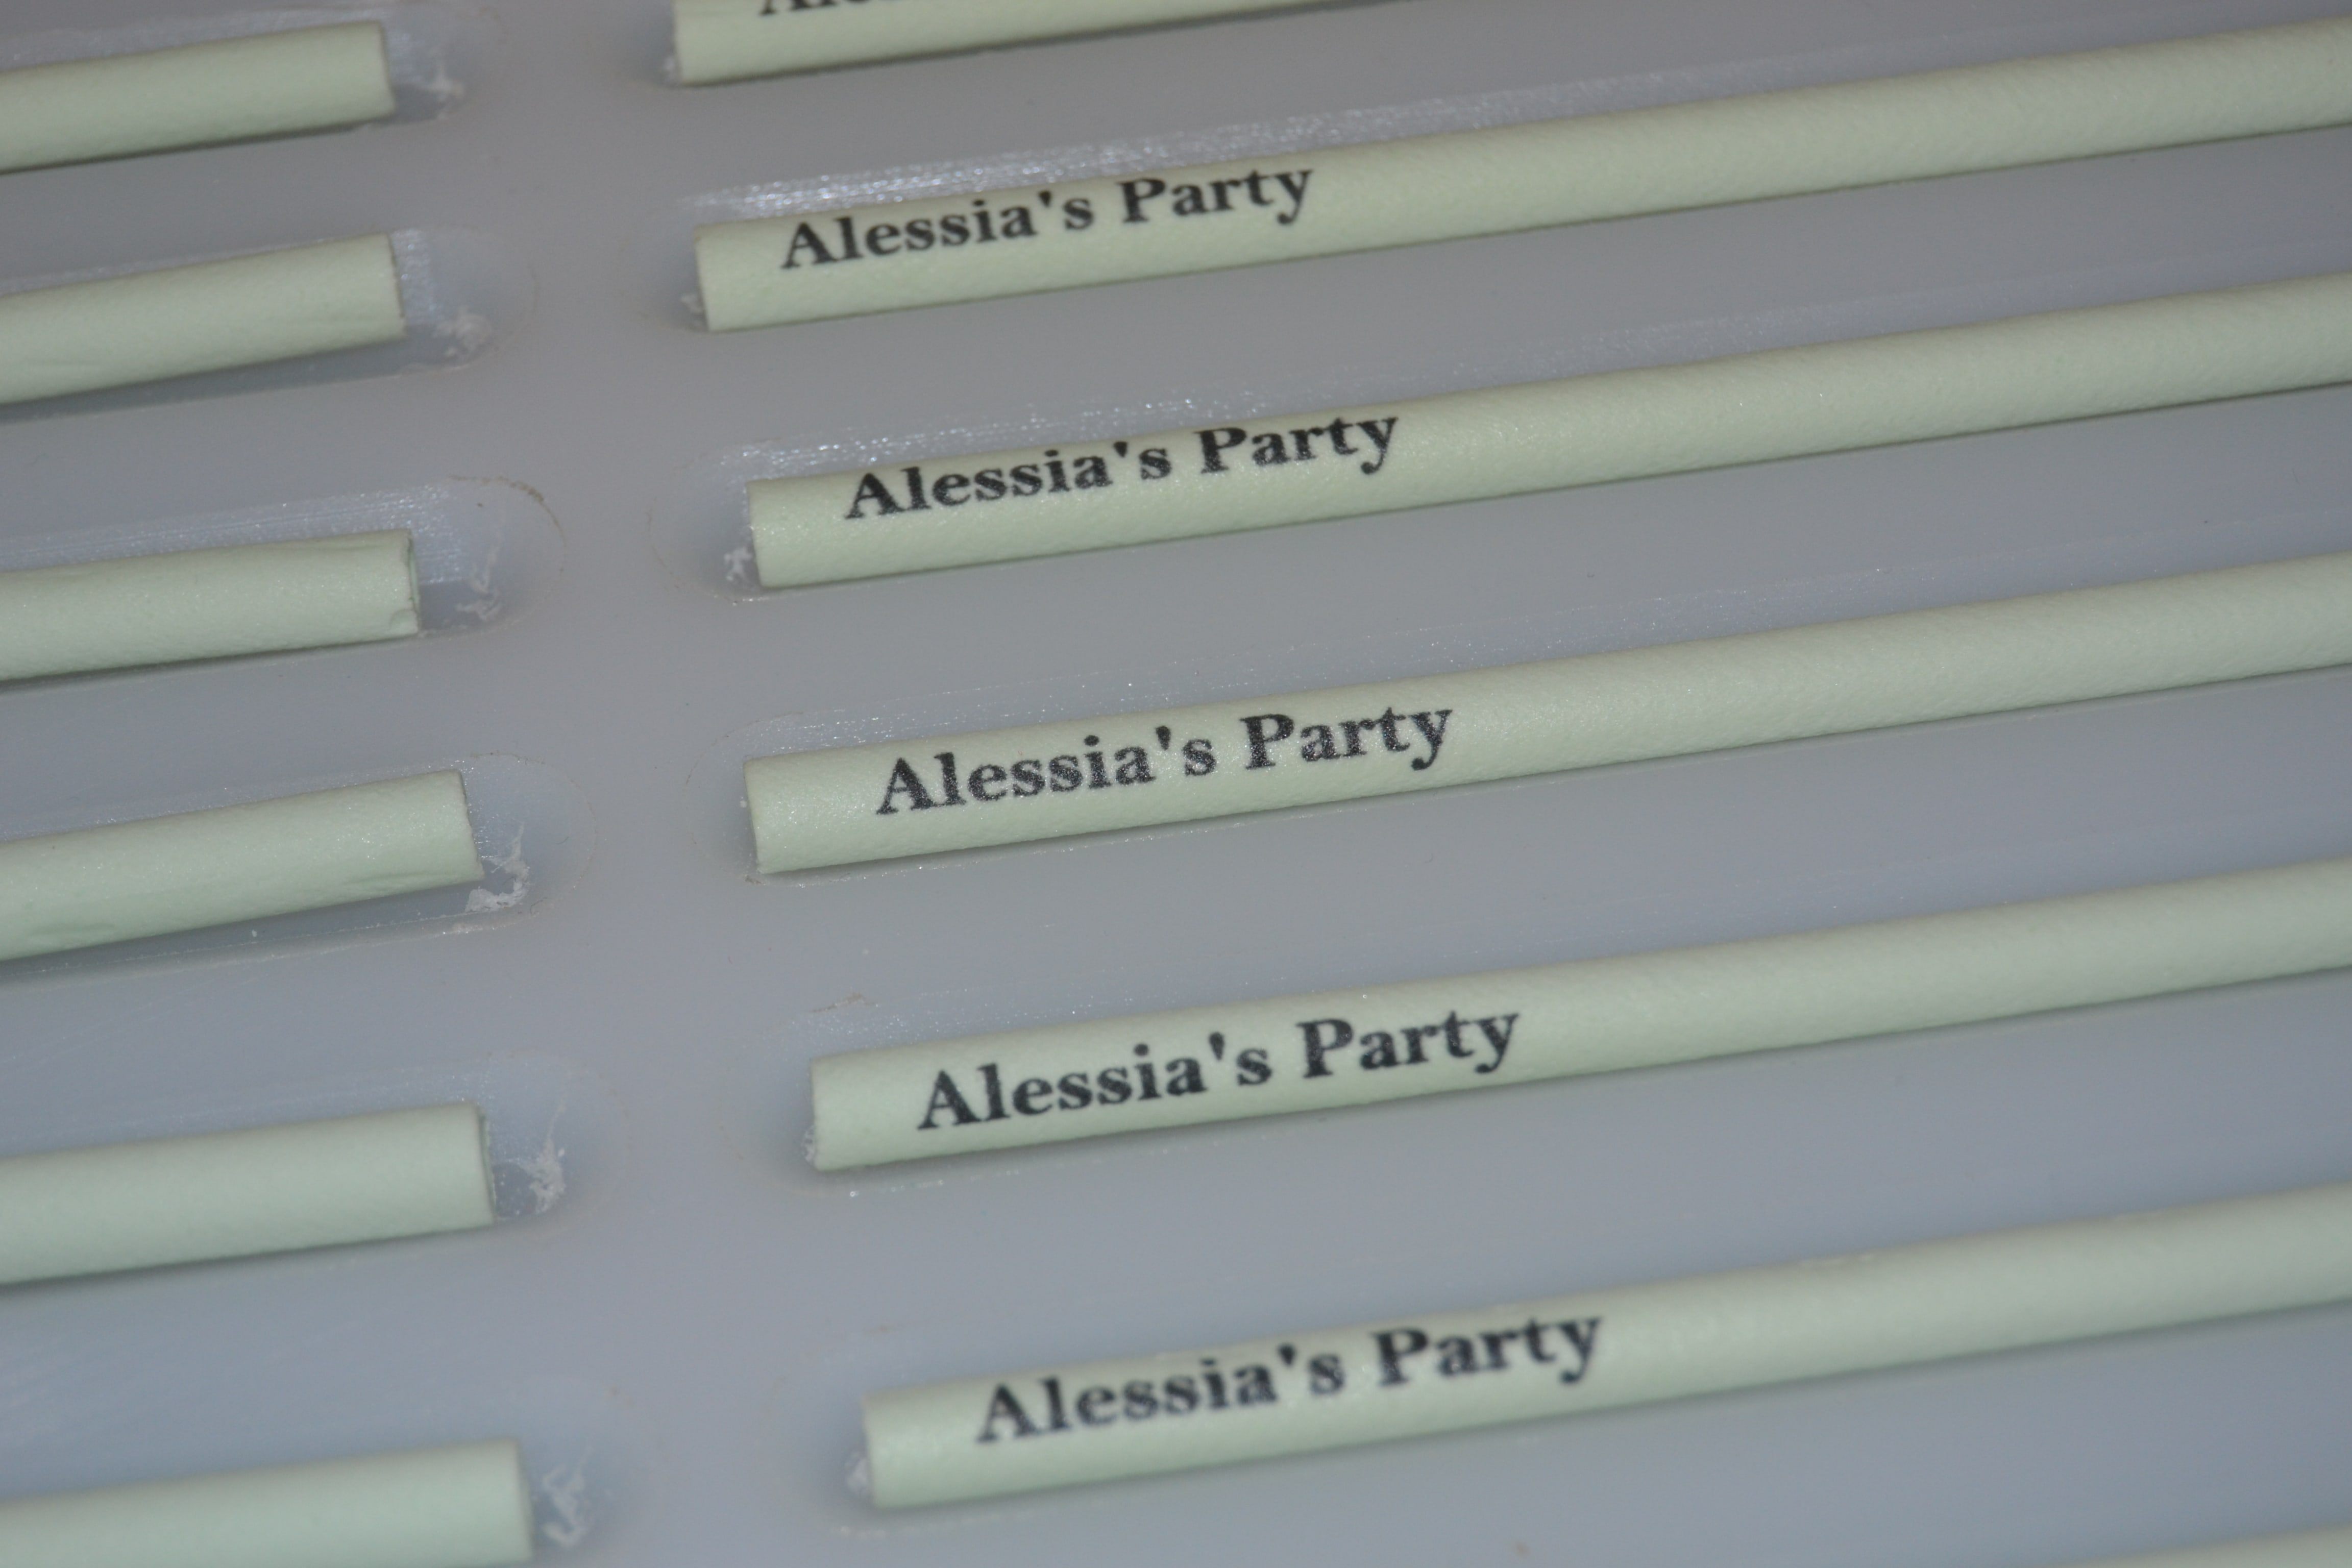 cannucce-personalizzate-alessia-s-party.jpg